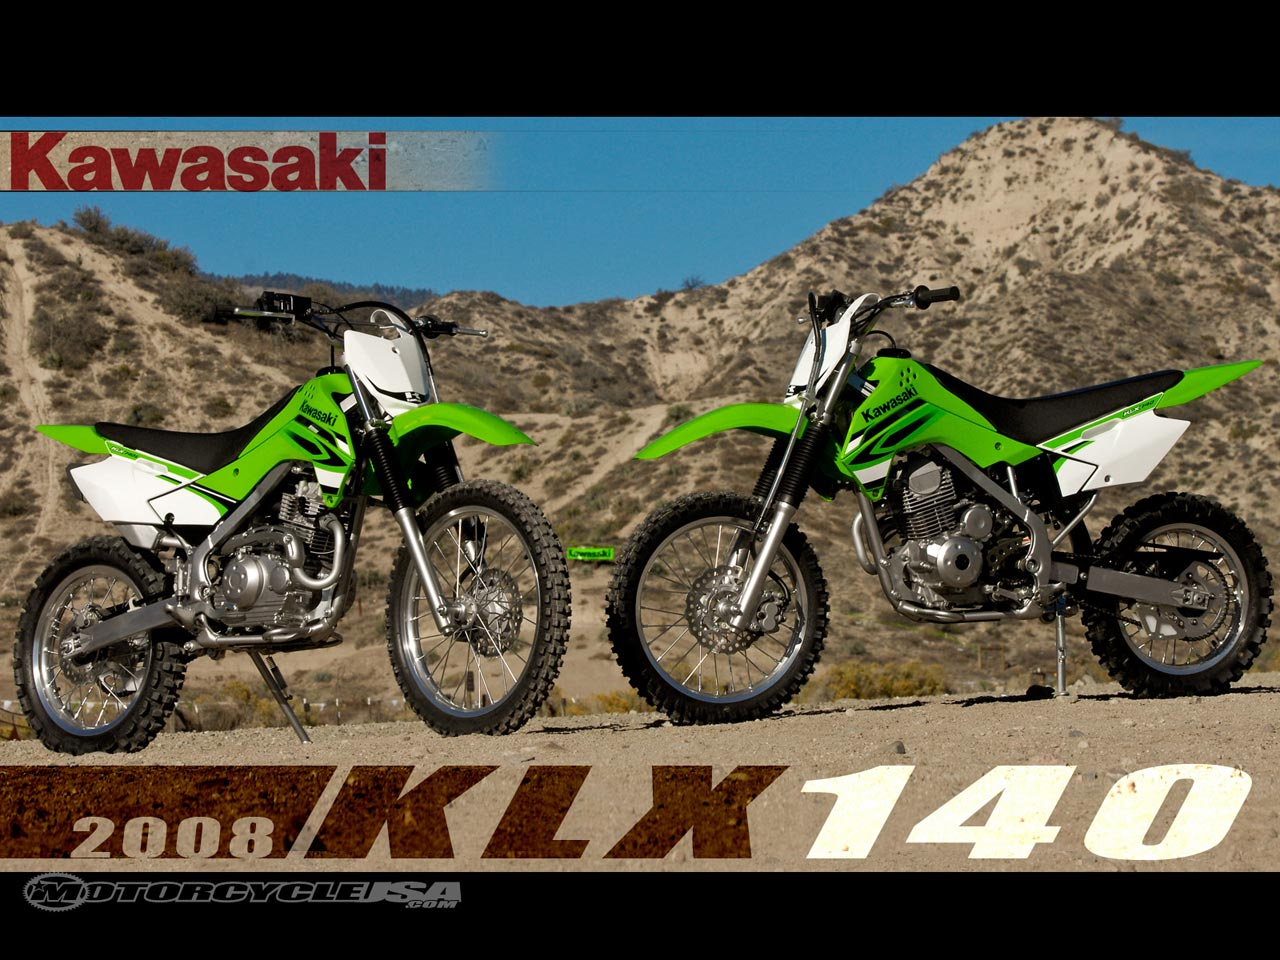 2008 Kawasaki KLX 110 pic 18 - onlymotorbikes.com on honda wiring diagram, x2 pocket bike wiring diagram, dio 50 wiring diagram, pit bike wiring diagram, lifan 125 wiring diagram, roketa 250 wiring diagram, marshin atv 250 wiring diagram, 110cc 4 wheeler wiring diagram,